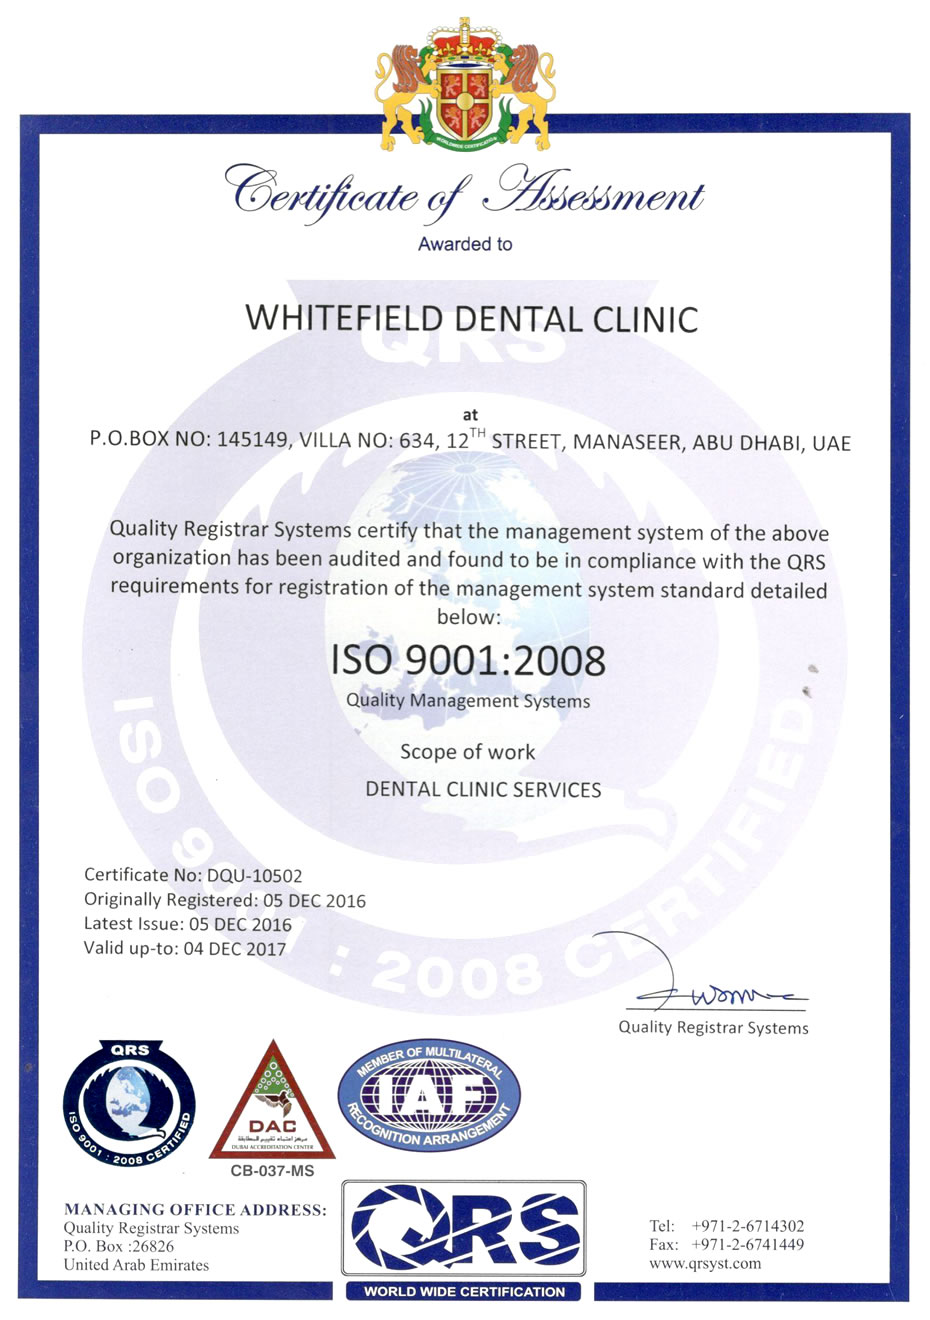 Welcome to whitefield dental clinic iso certification xflitez Gallery